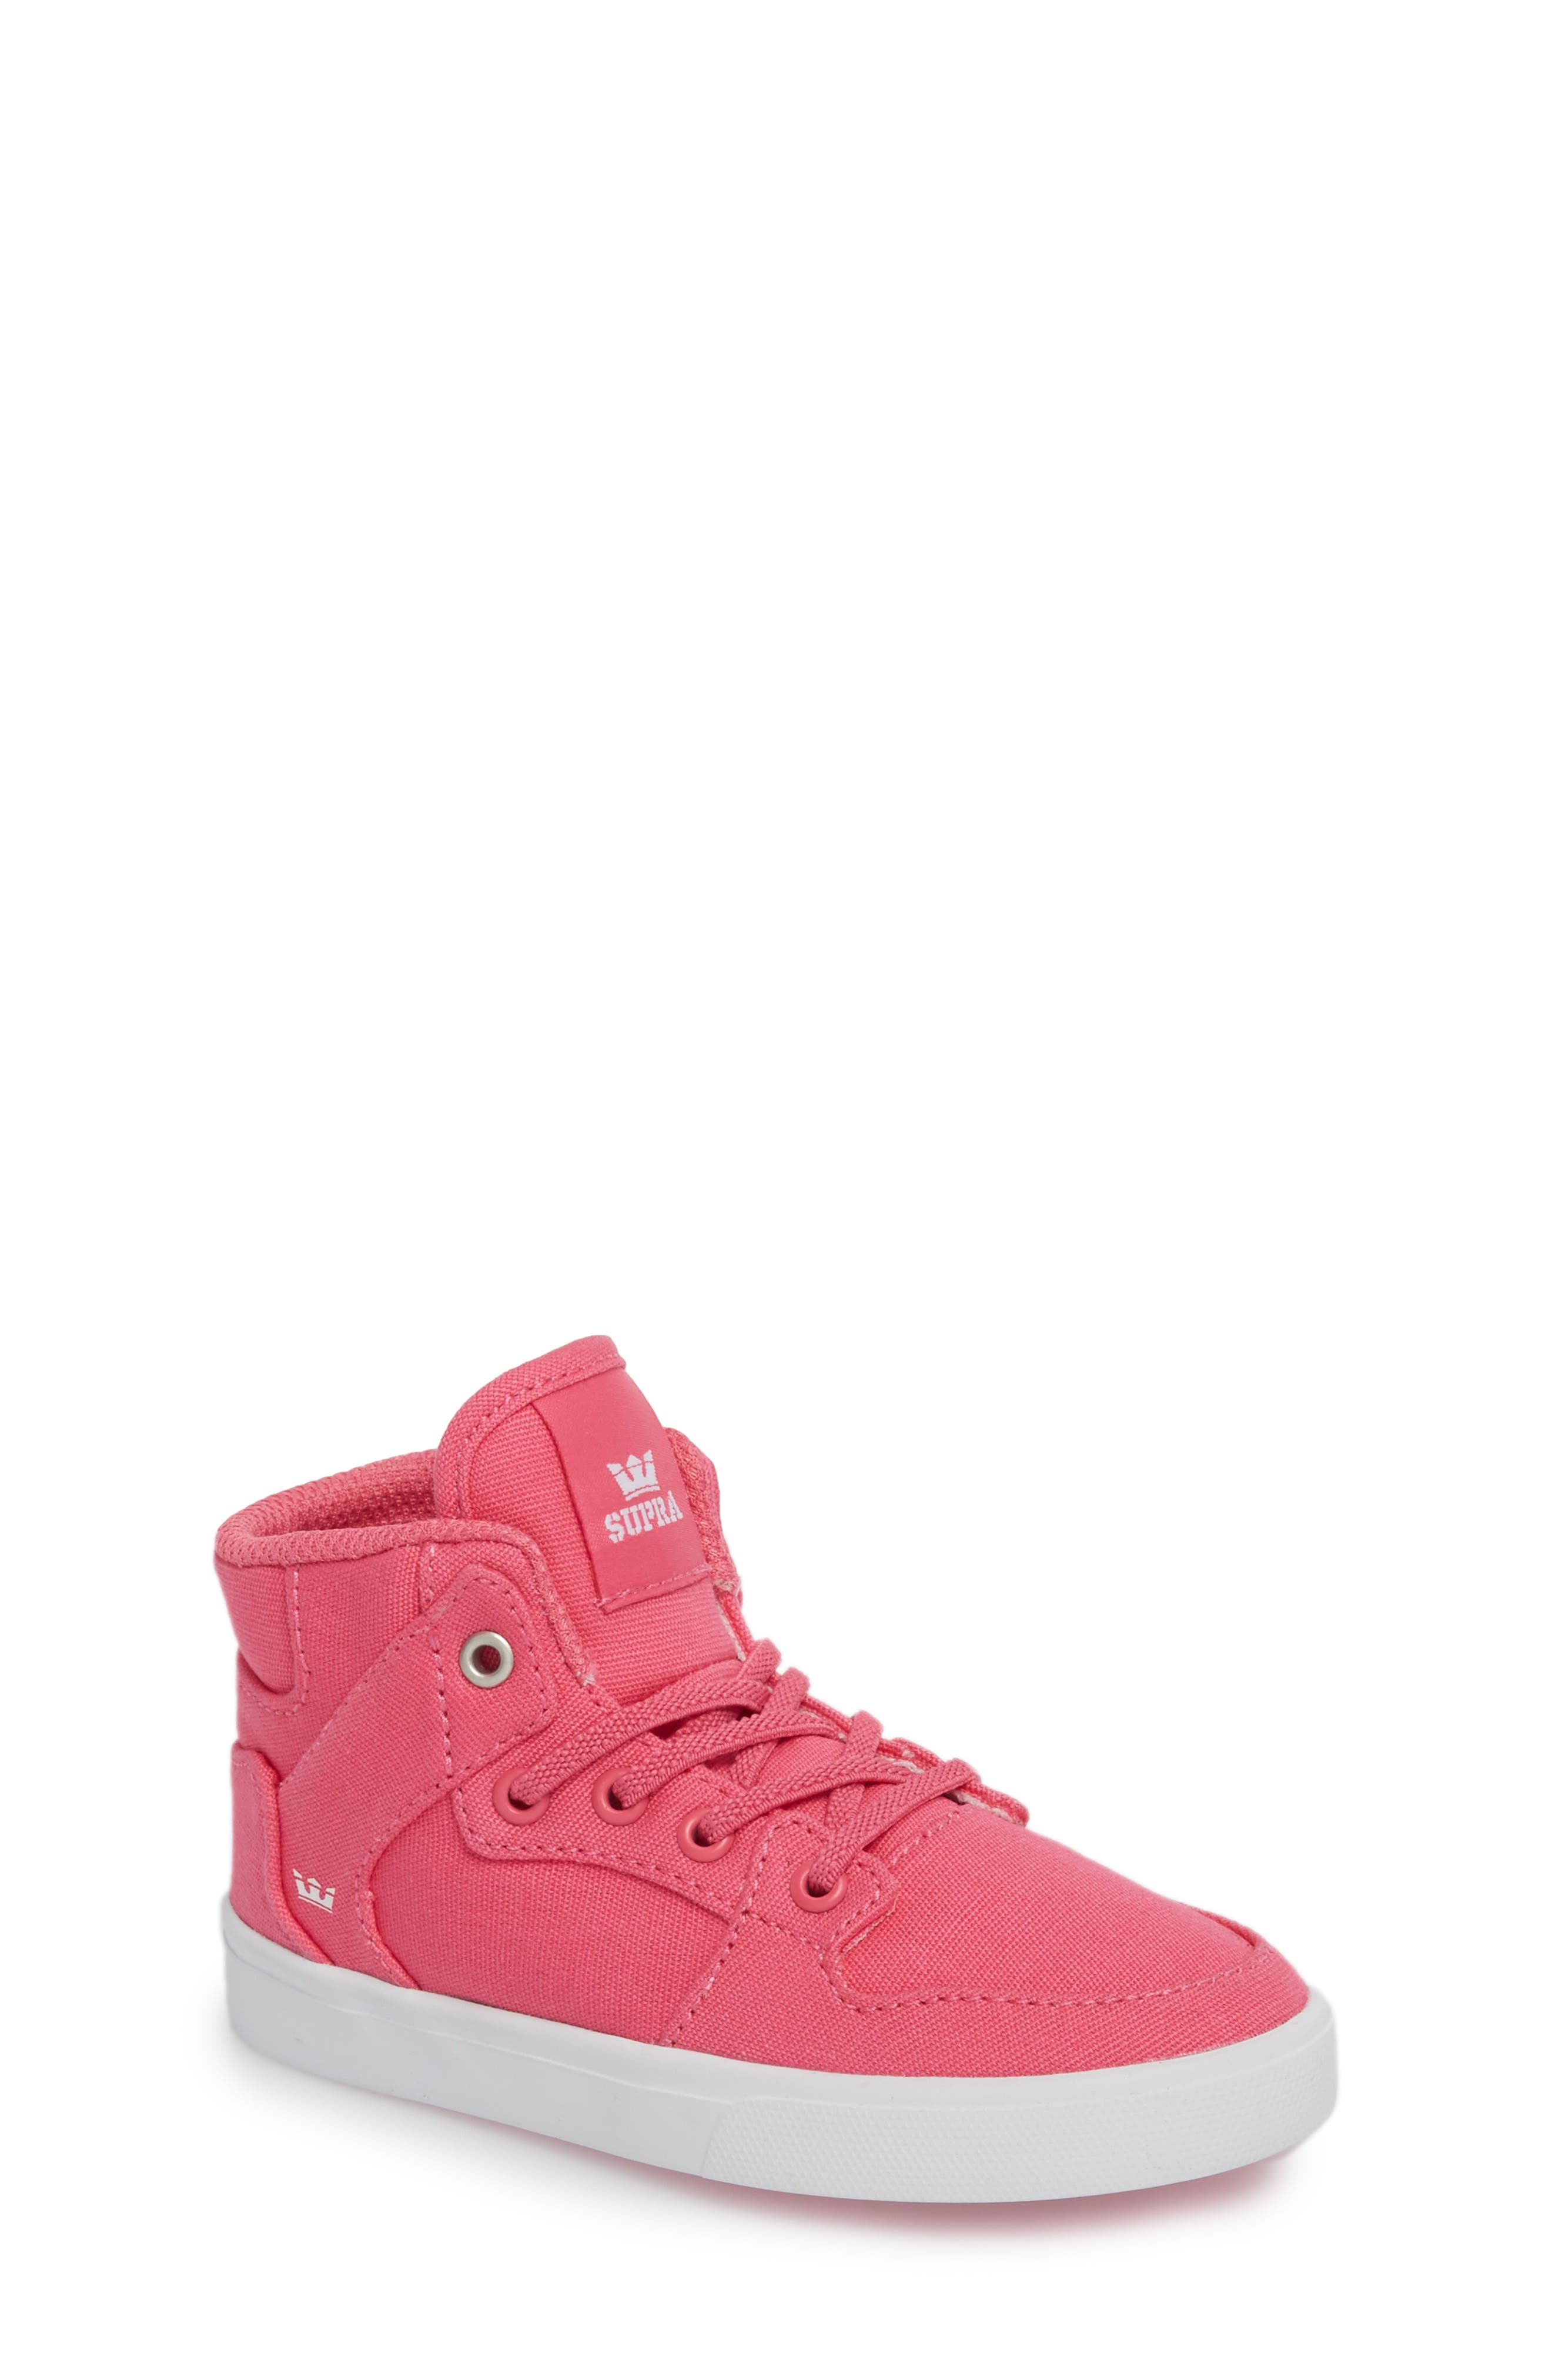 'Vaider' High Top Sneaker,                         Main,                         color, Pink